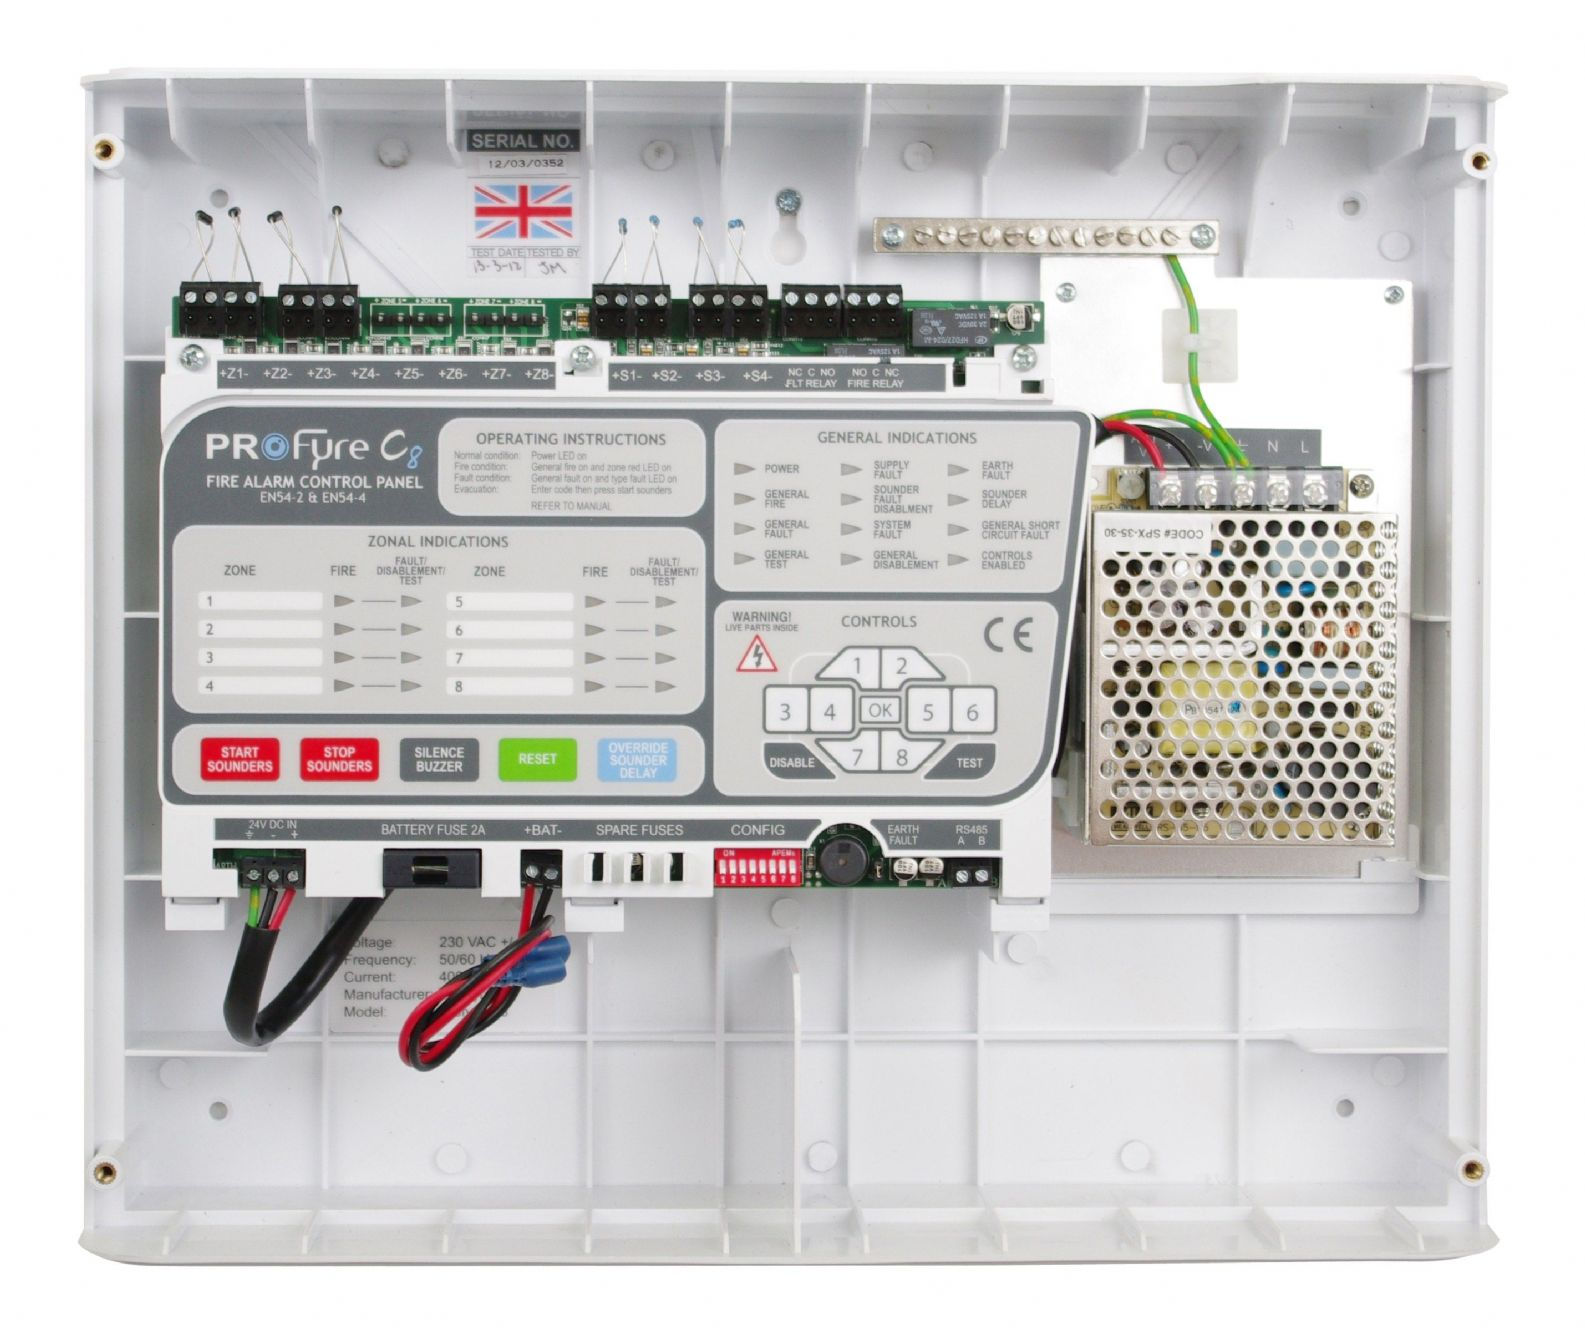 fire alarm system wiring diagram profyre 2wire addressable fire c8 2 profyre c8 2 zone conventional fire alarm panel fire alarm system wiring diagram profyre 2wire addressable fire